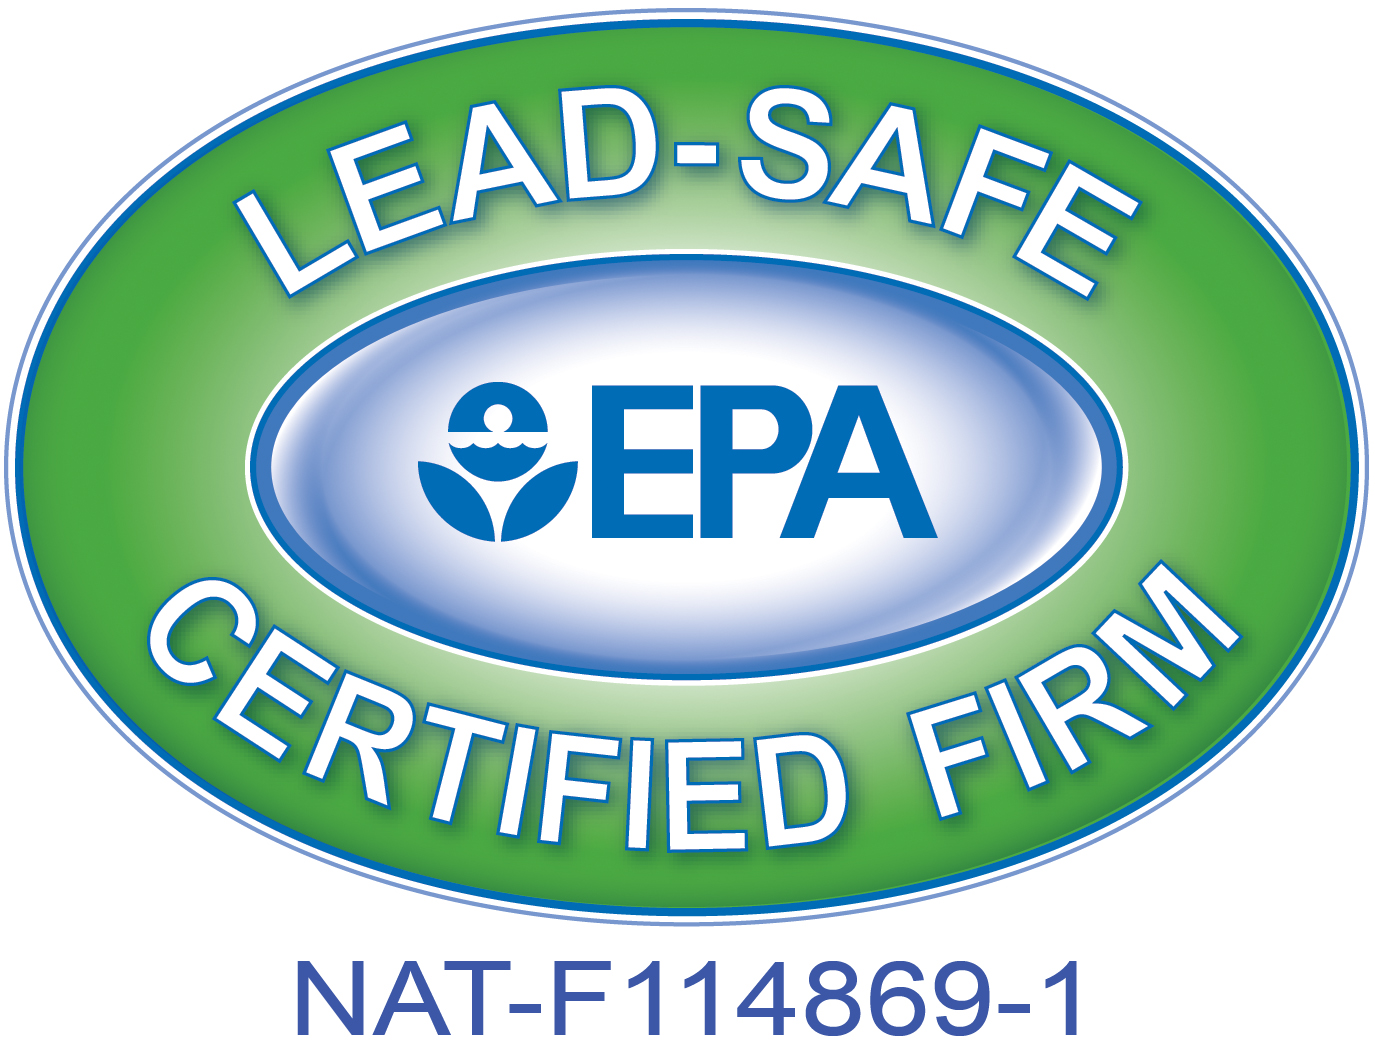 US EPA Certified Lead Safe Firm